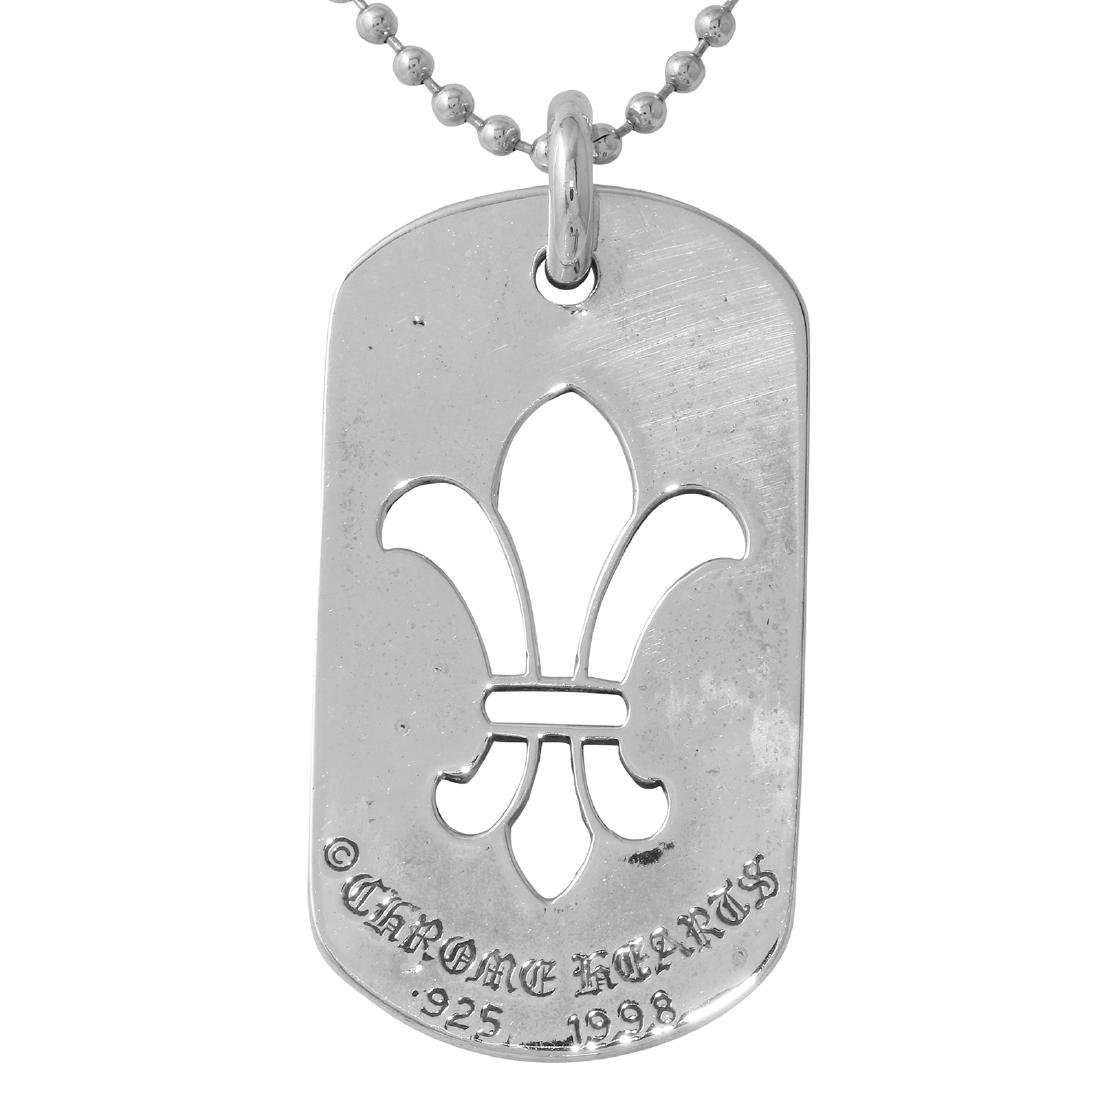 "Chrome Hearts Sterling Silver Dog Tag Necklace 30"" Long"